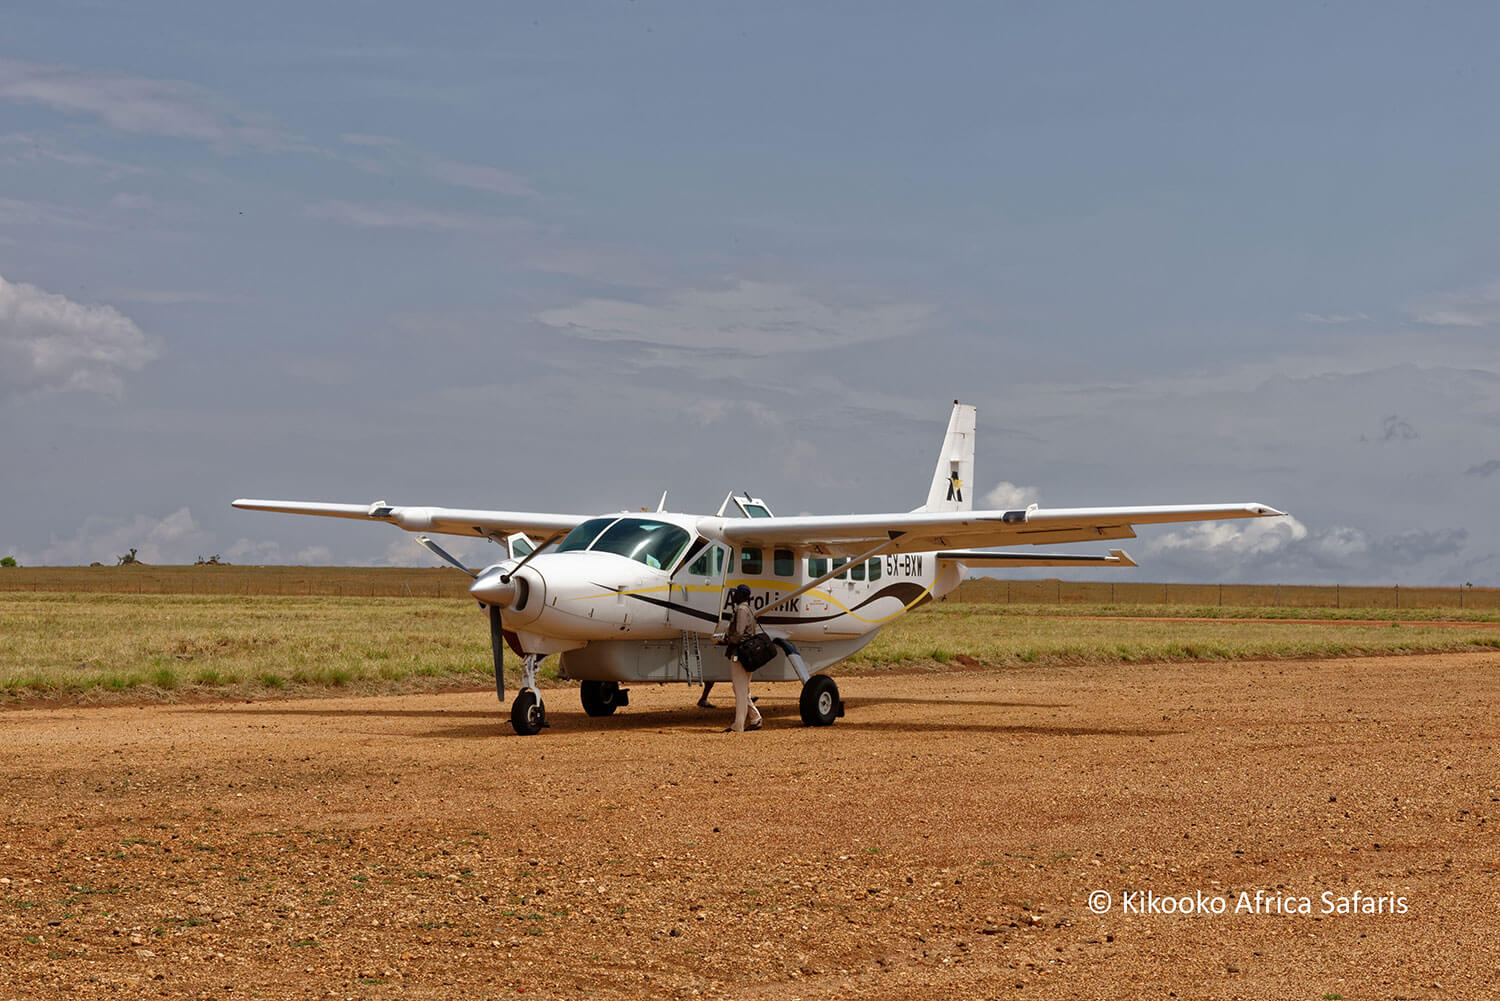 04-Kikooko-Africa-Safaris-Airplane.jpg